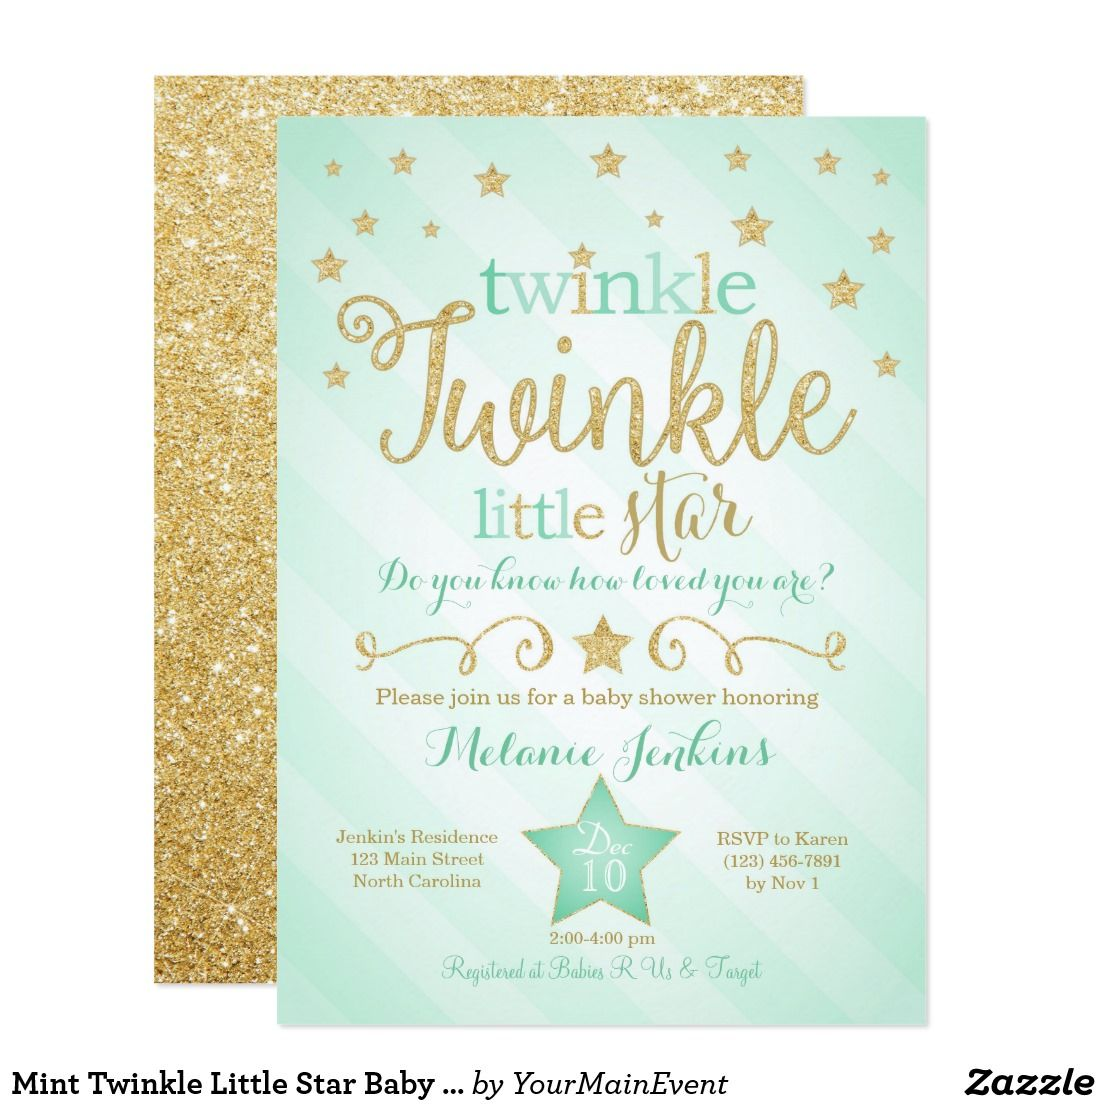 Mint Twinkle Little Star Baby Shower Invitation Star baby showers